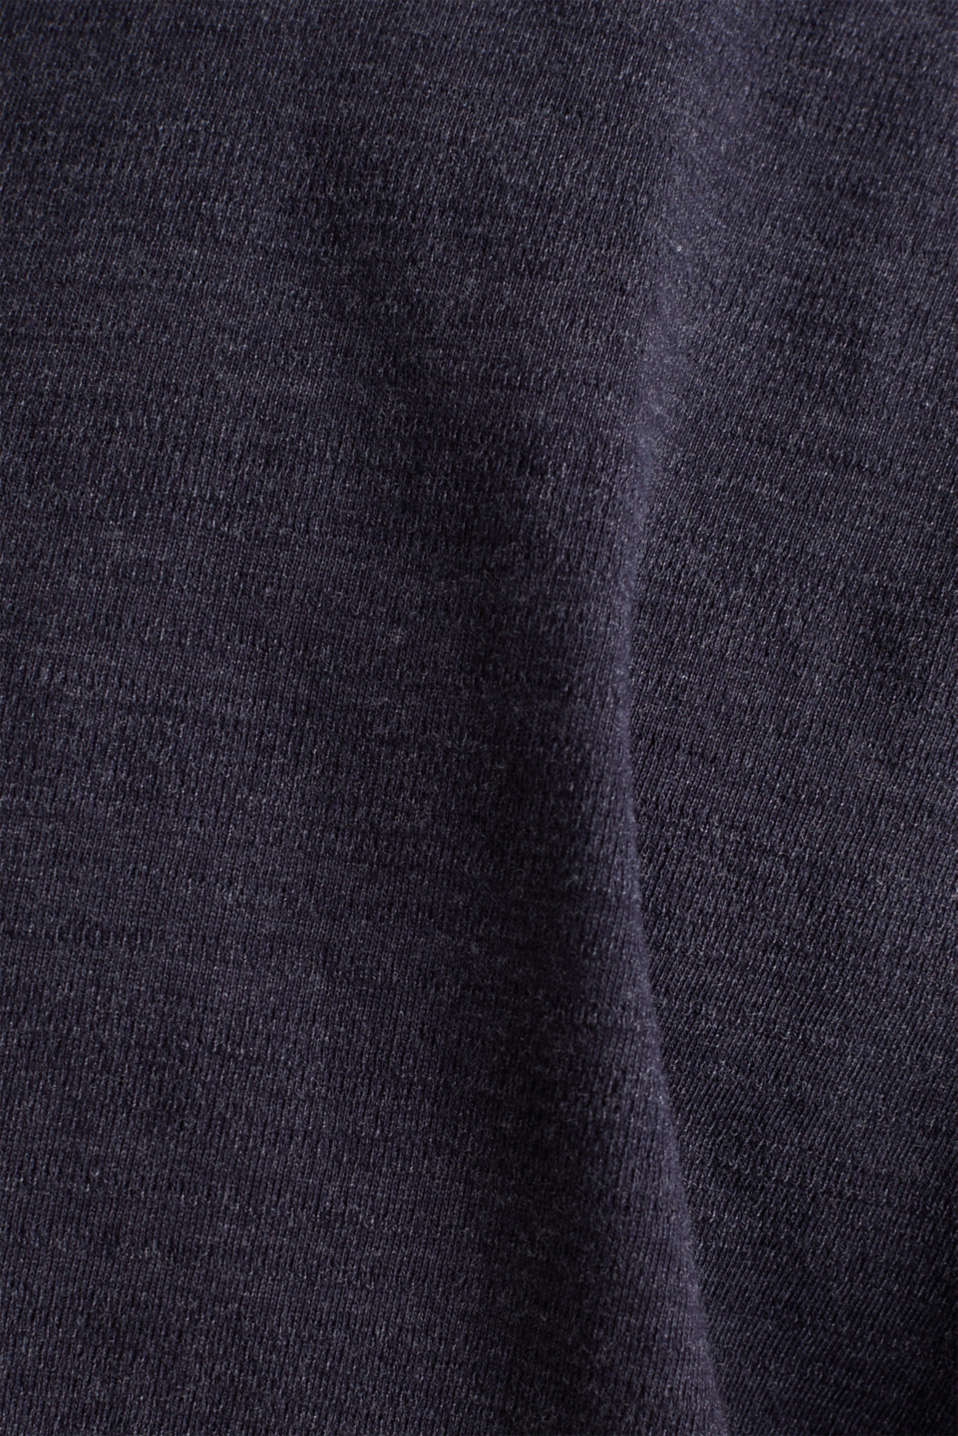 Long sleeve top made of textured jersey, NAVY 5, detail image number 4